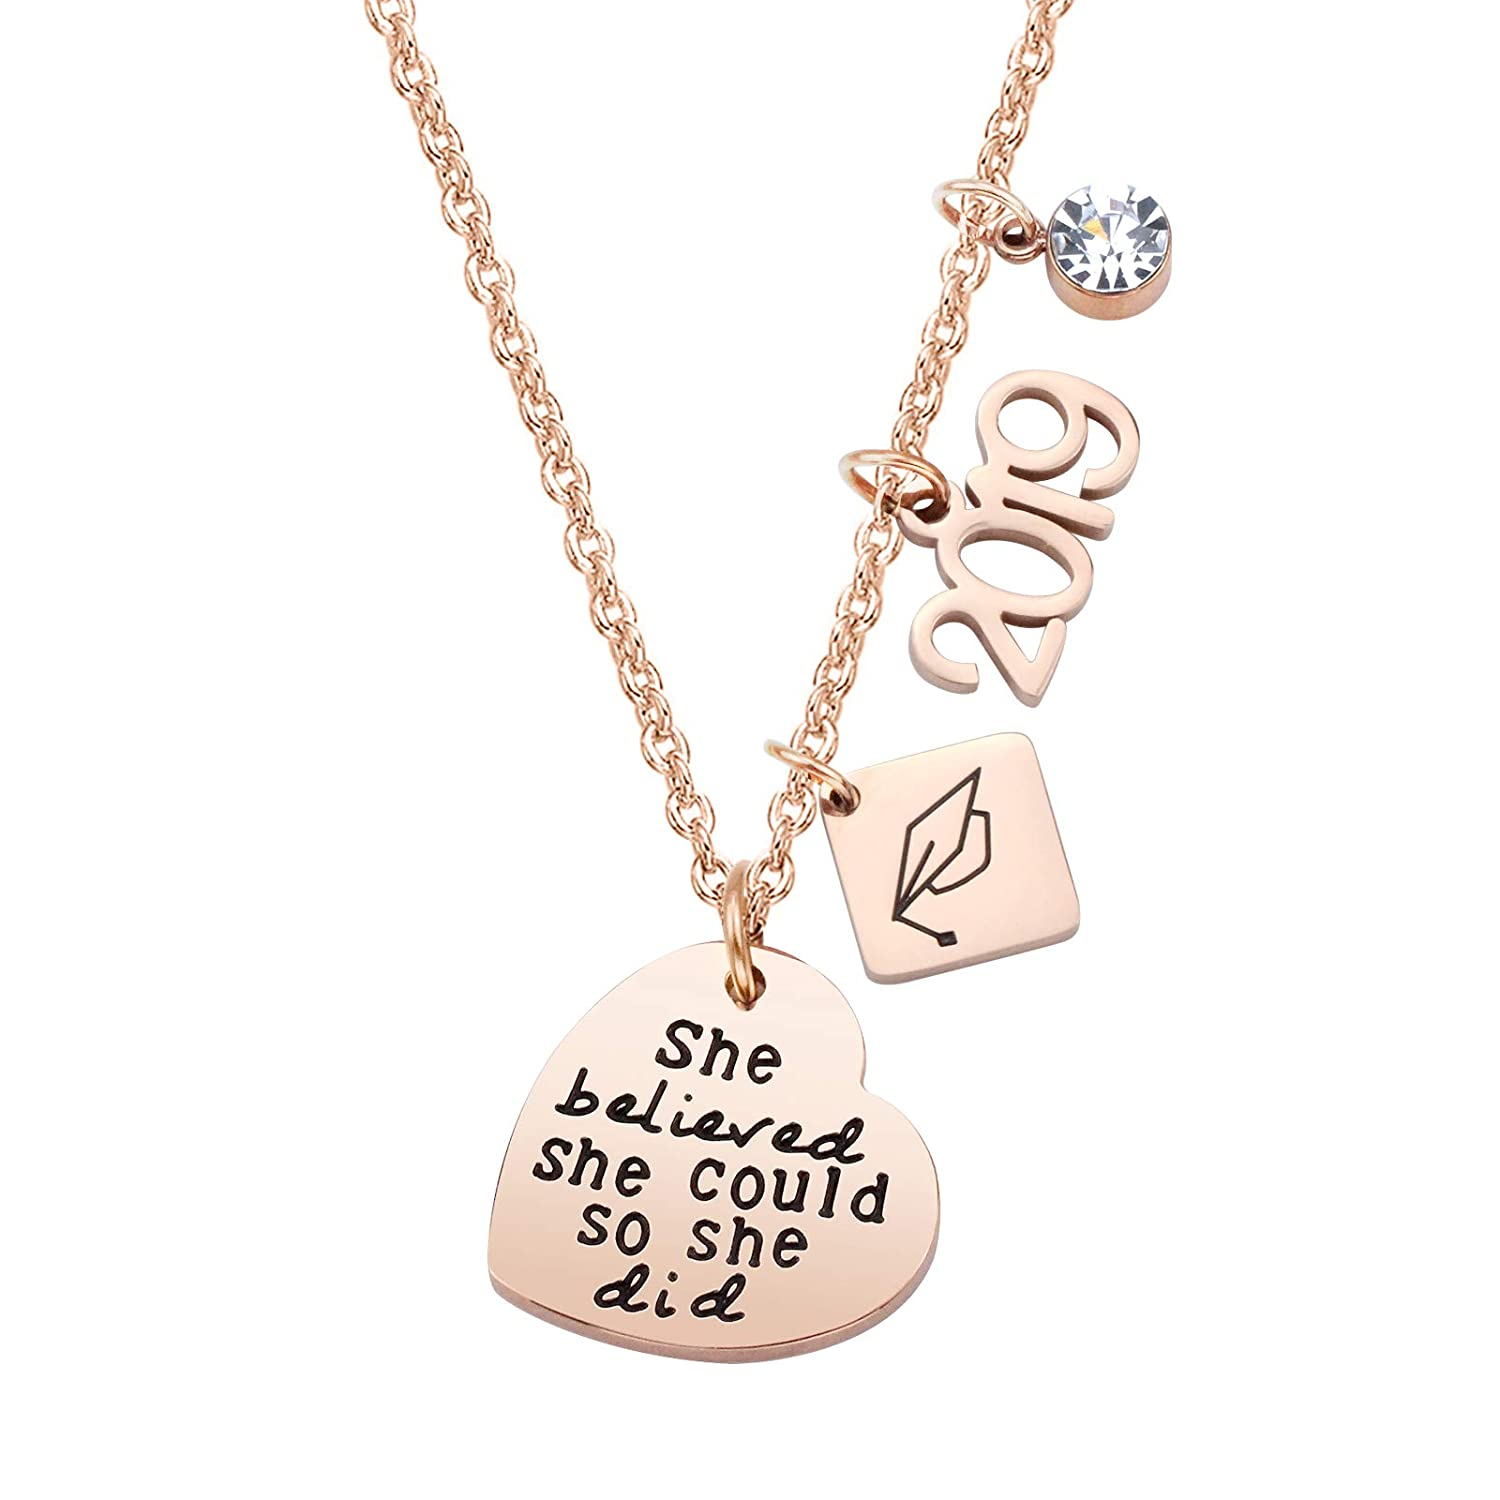 ivyAnan Jewellery Inspirational Gift for Women Girls Graduation Gift Jewelry Necklace Keychain Engraved She Believed She Could So She Did 2018 2019